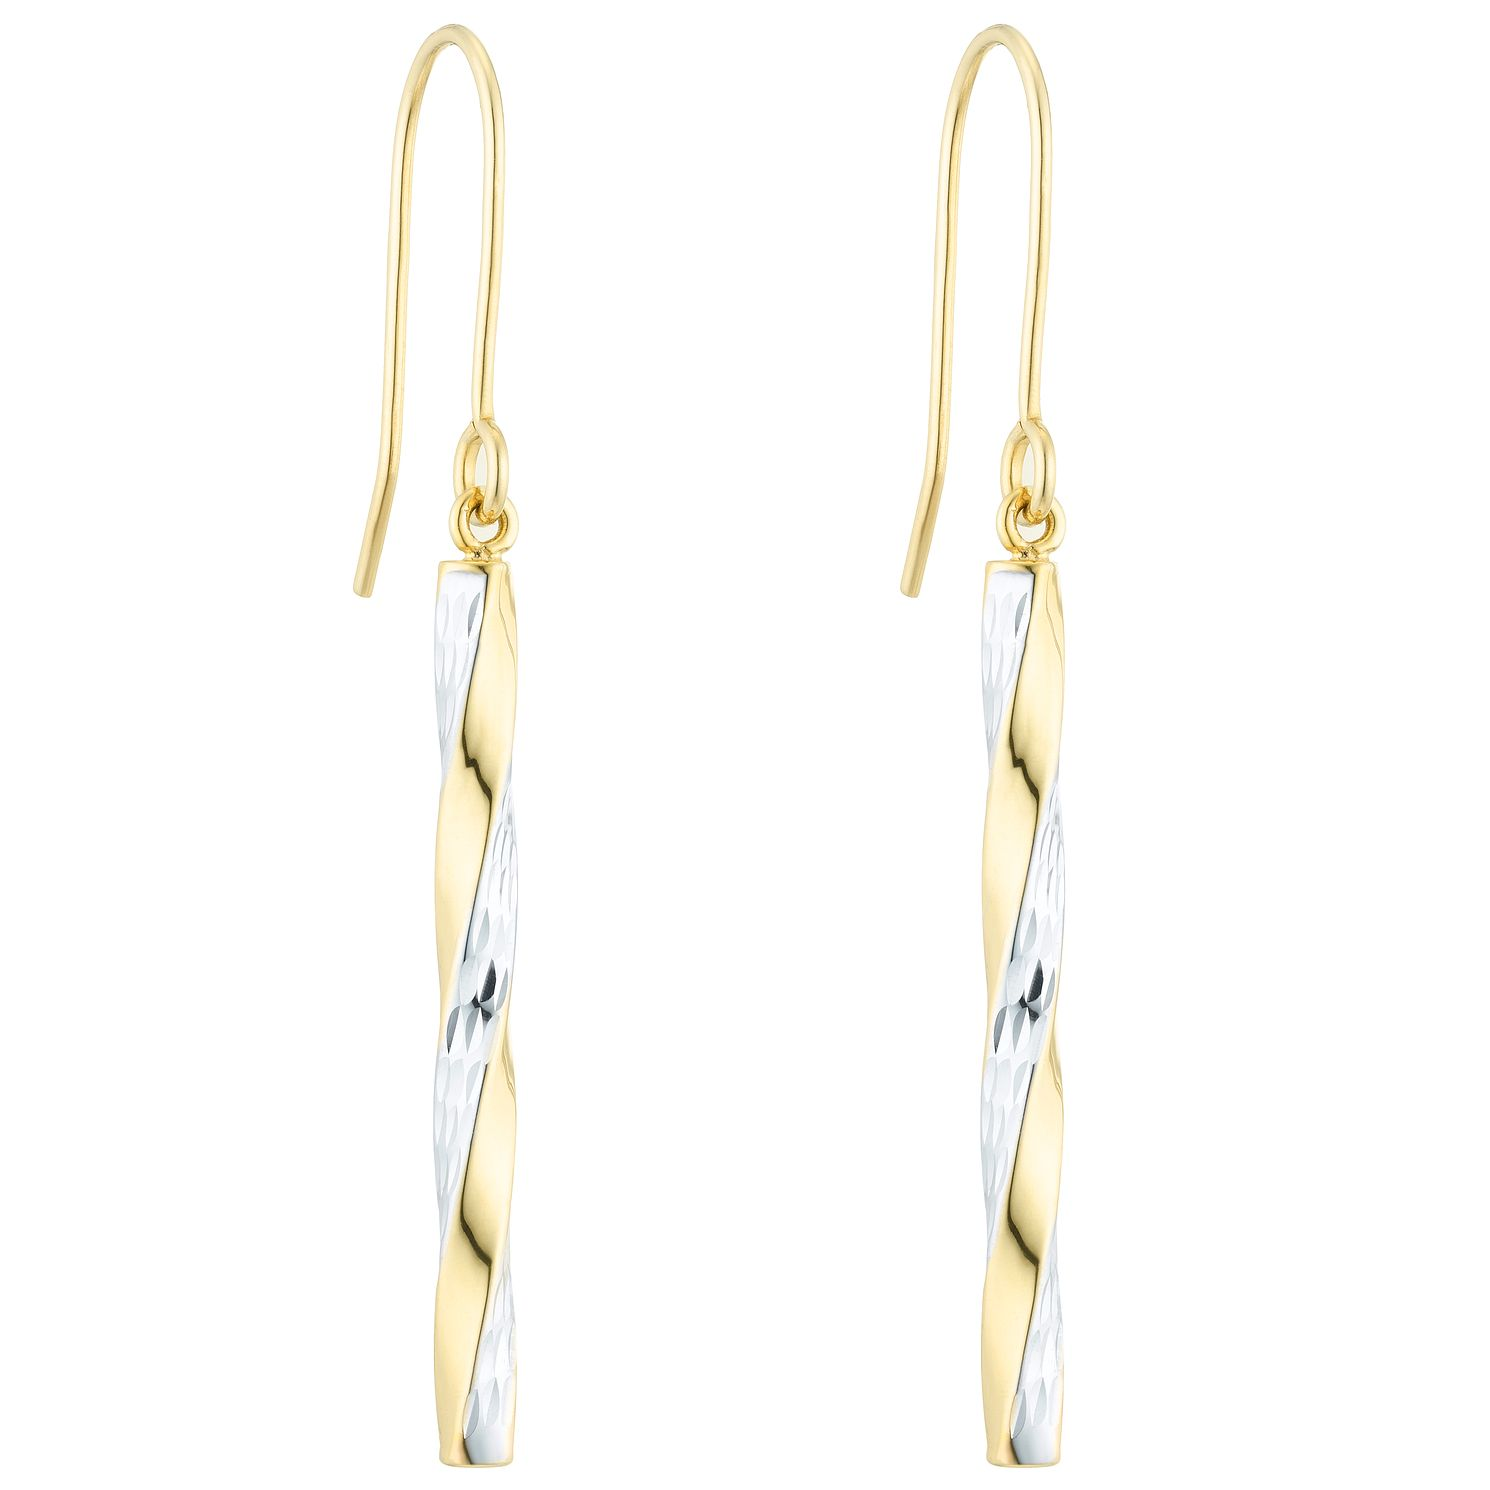 9ct Gold 2 Colour Diamond Cut Twist Drop Earrings - Product number 6129900